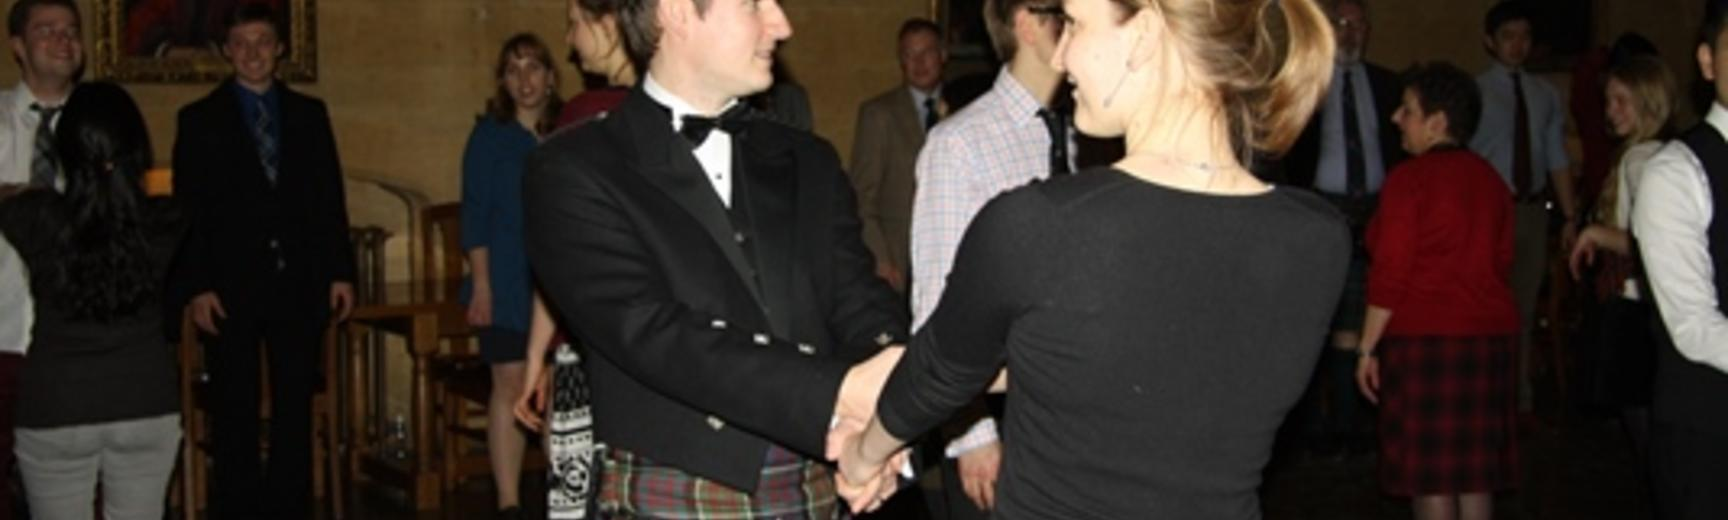 ceilidh dancing small 2